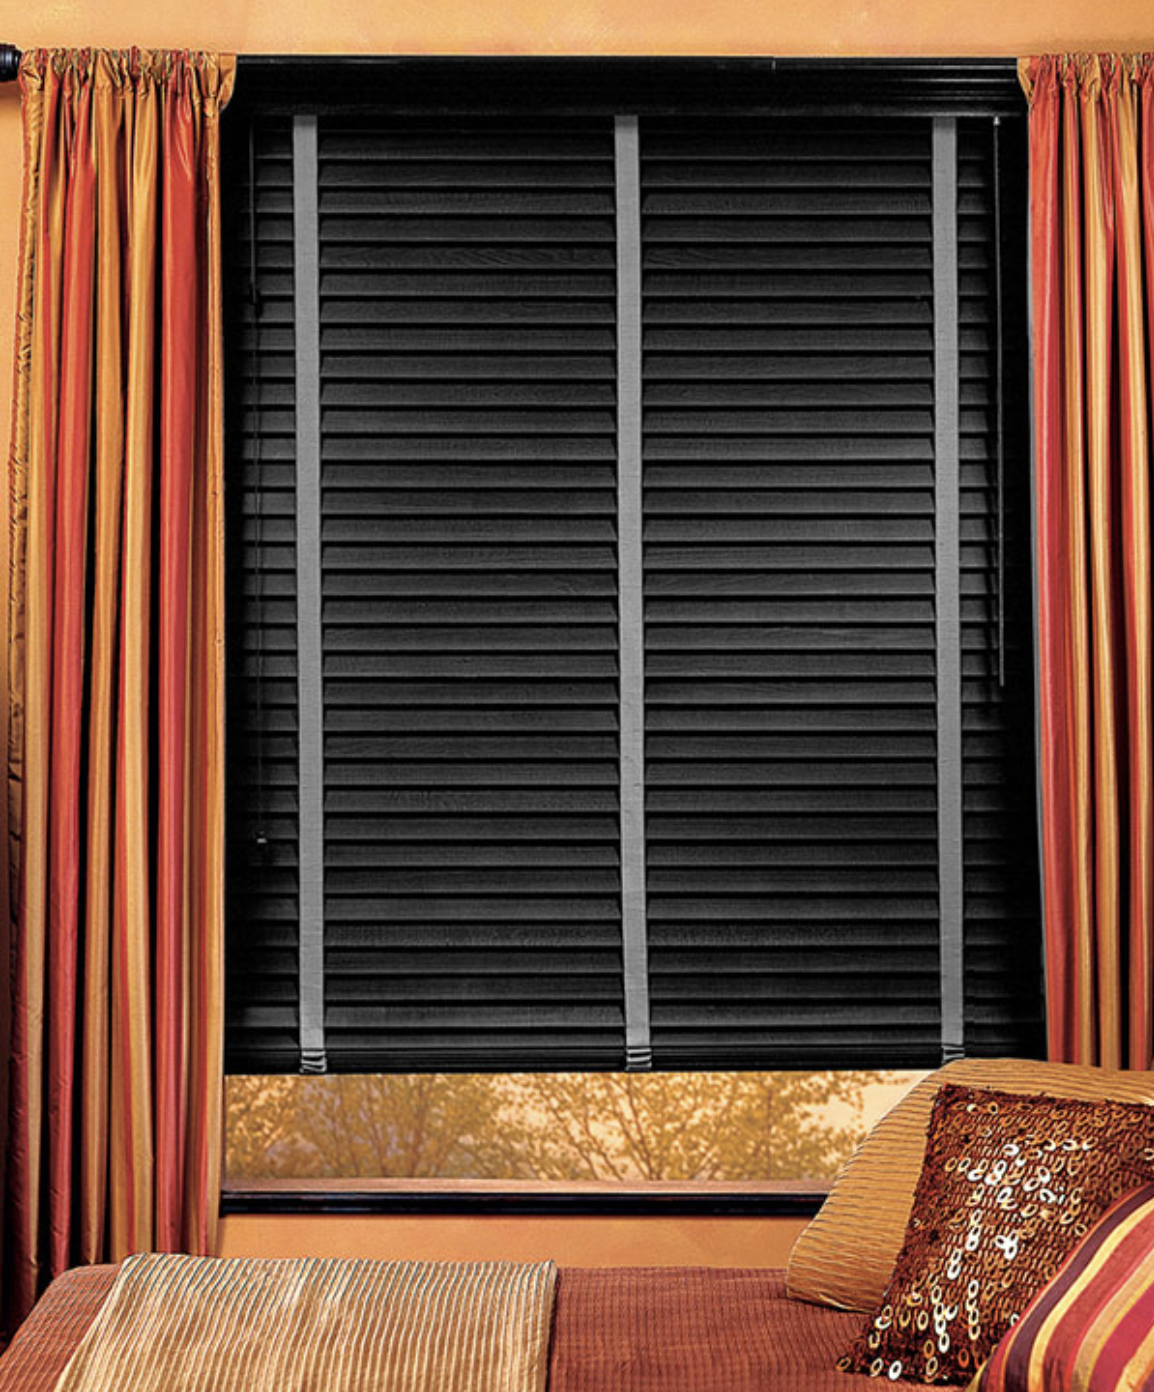 Wooden Venetian blinds can comes with visible tapes